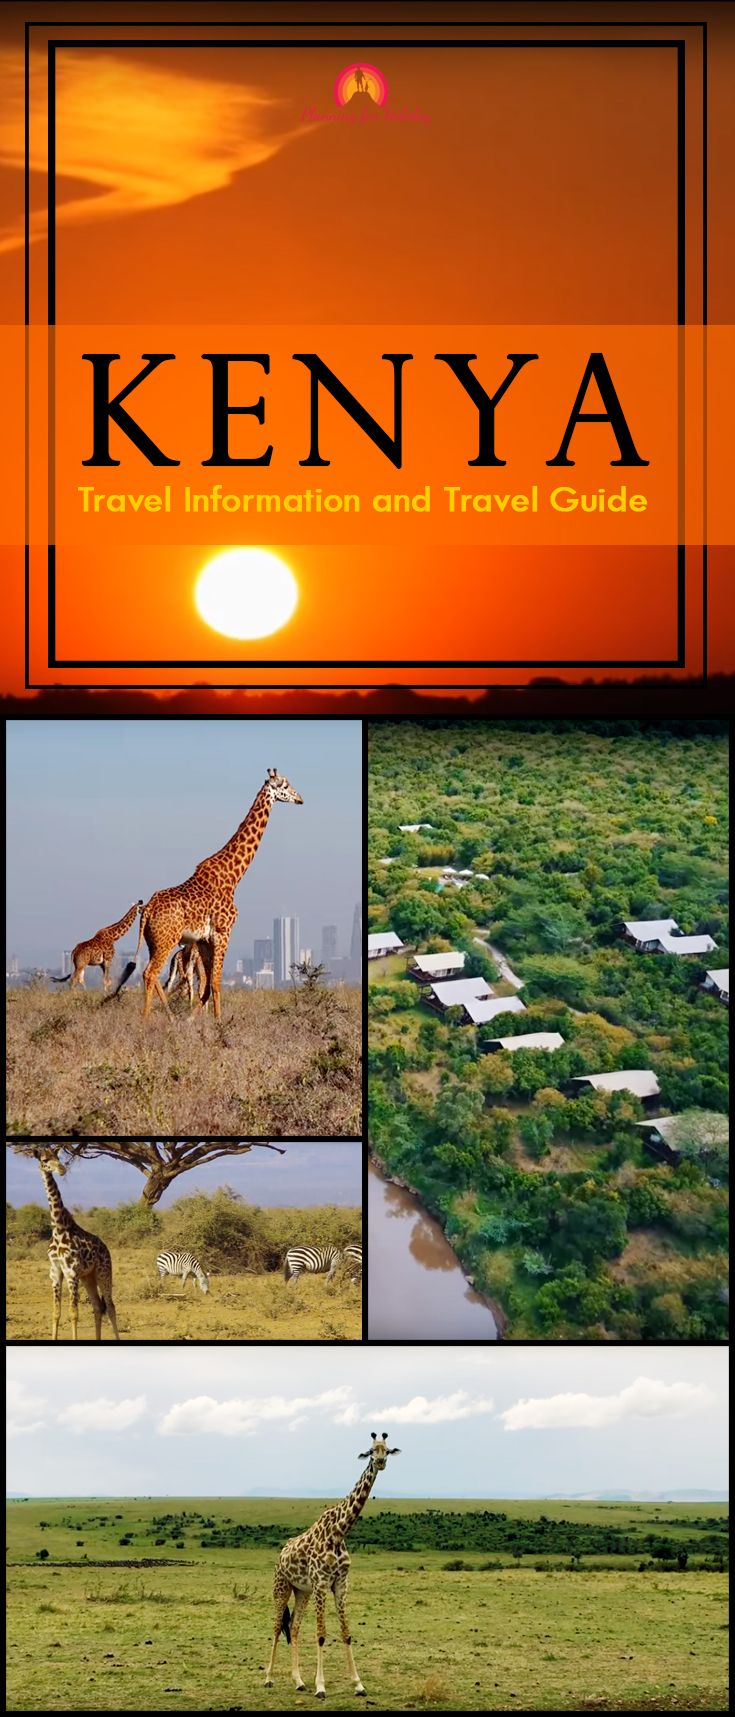 5 Best places of Kenya. July to October is the best time to visit Kenya. This is the dry season when the average daytime temperature is 23-28 degree Celsius. Dry season traveling has several advantages including greater visibility of wildlife. The diminishing watercourses force the wildlife to make more public appearances. #Kenya #Traveldestinations #Adventure #TravelInformation #TravelGuide #TravelTips